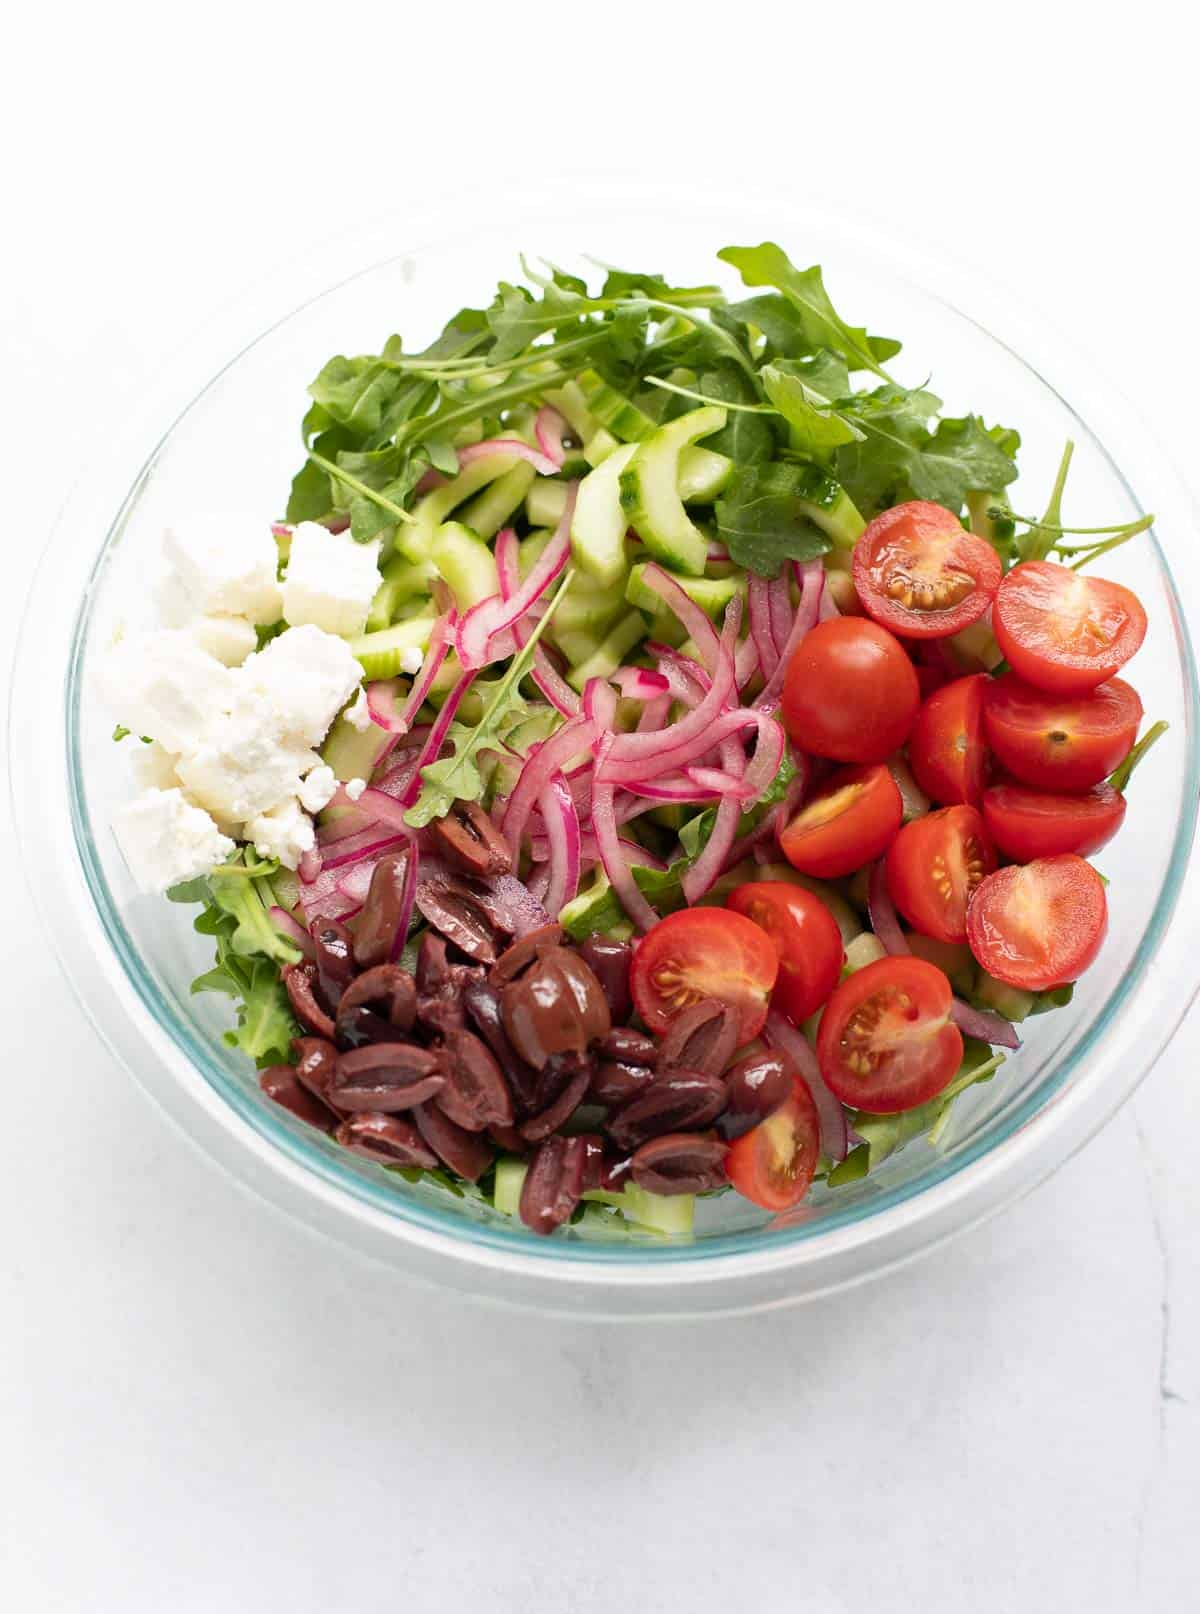 slices of cucumber, cherry tomatoes, kalamata olives, red onion, and arugula in large glass bowl